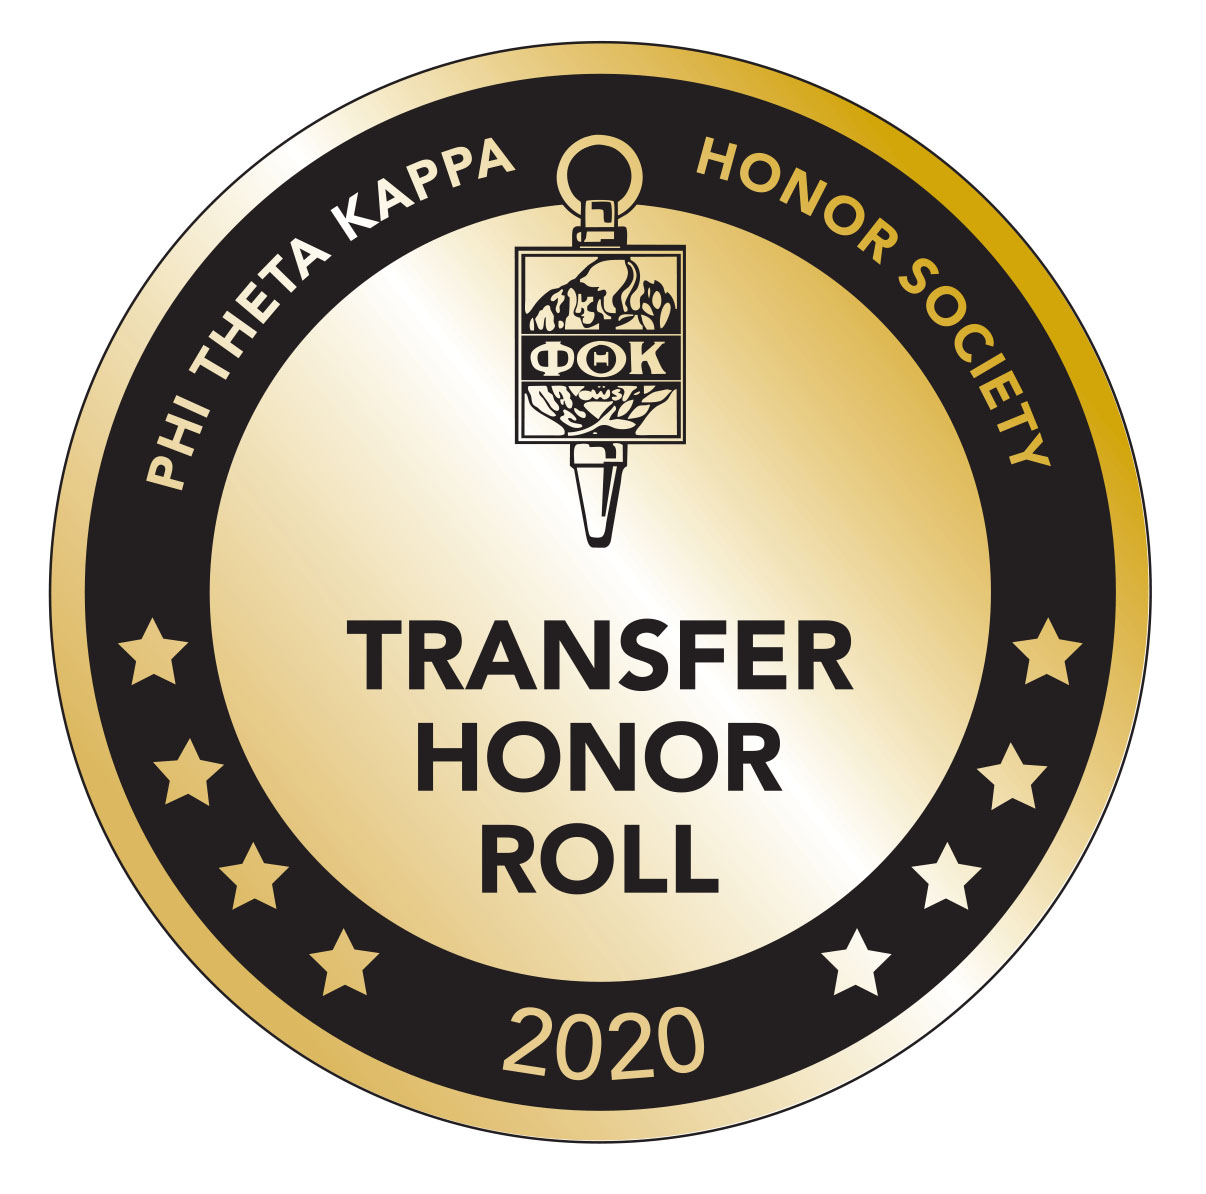 Transfer honor roll badge